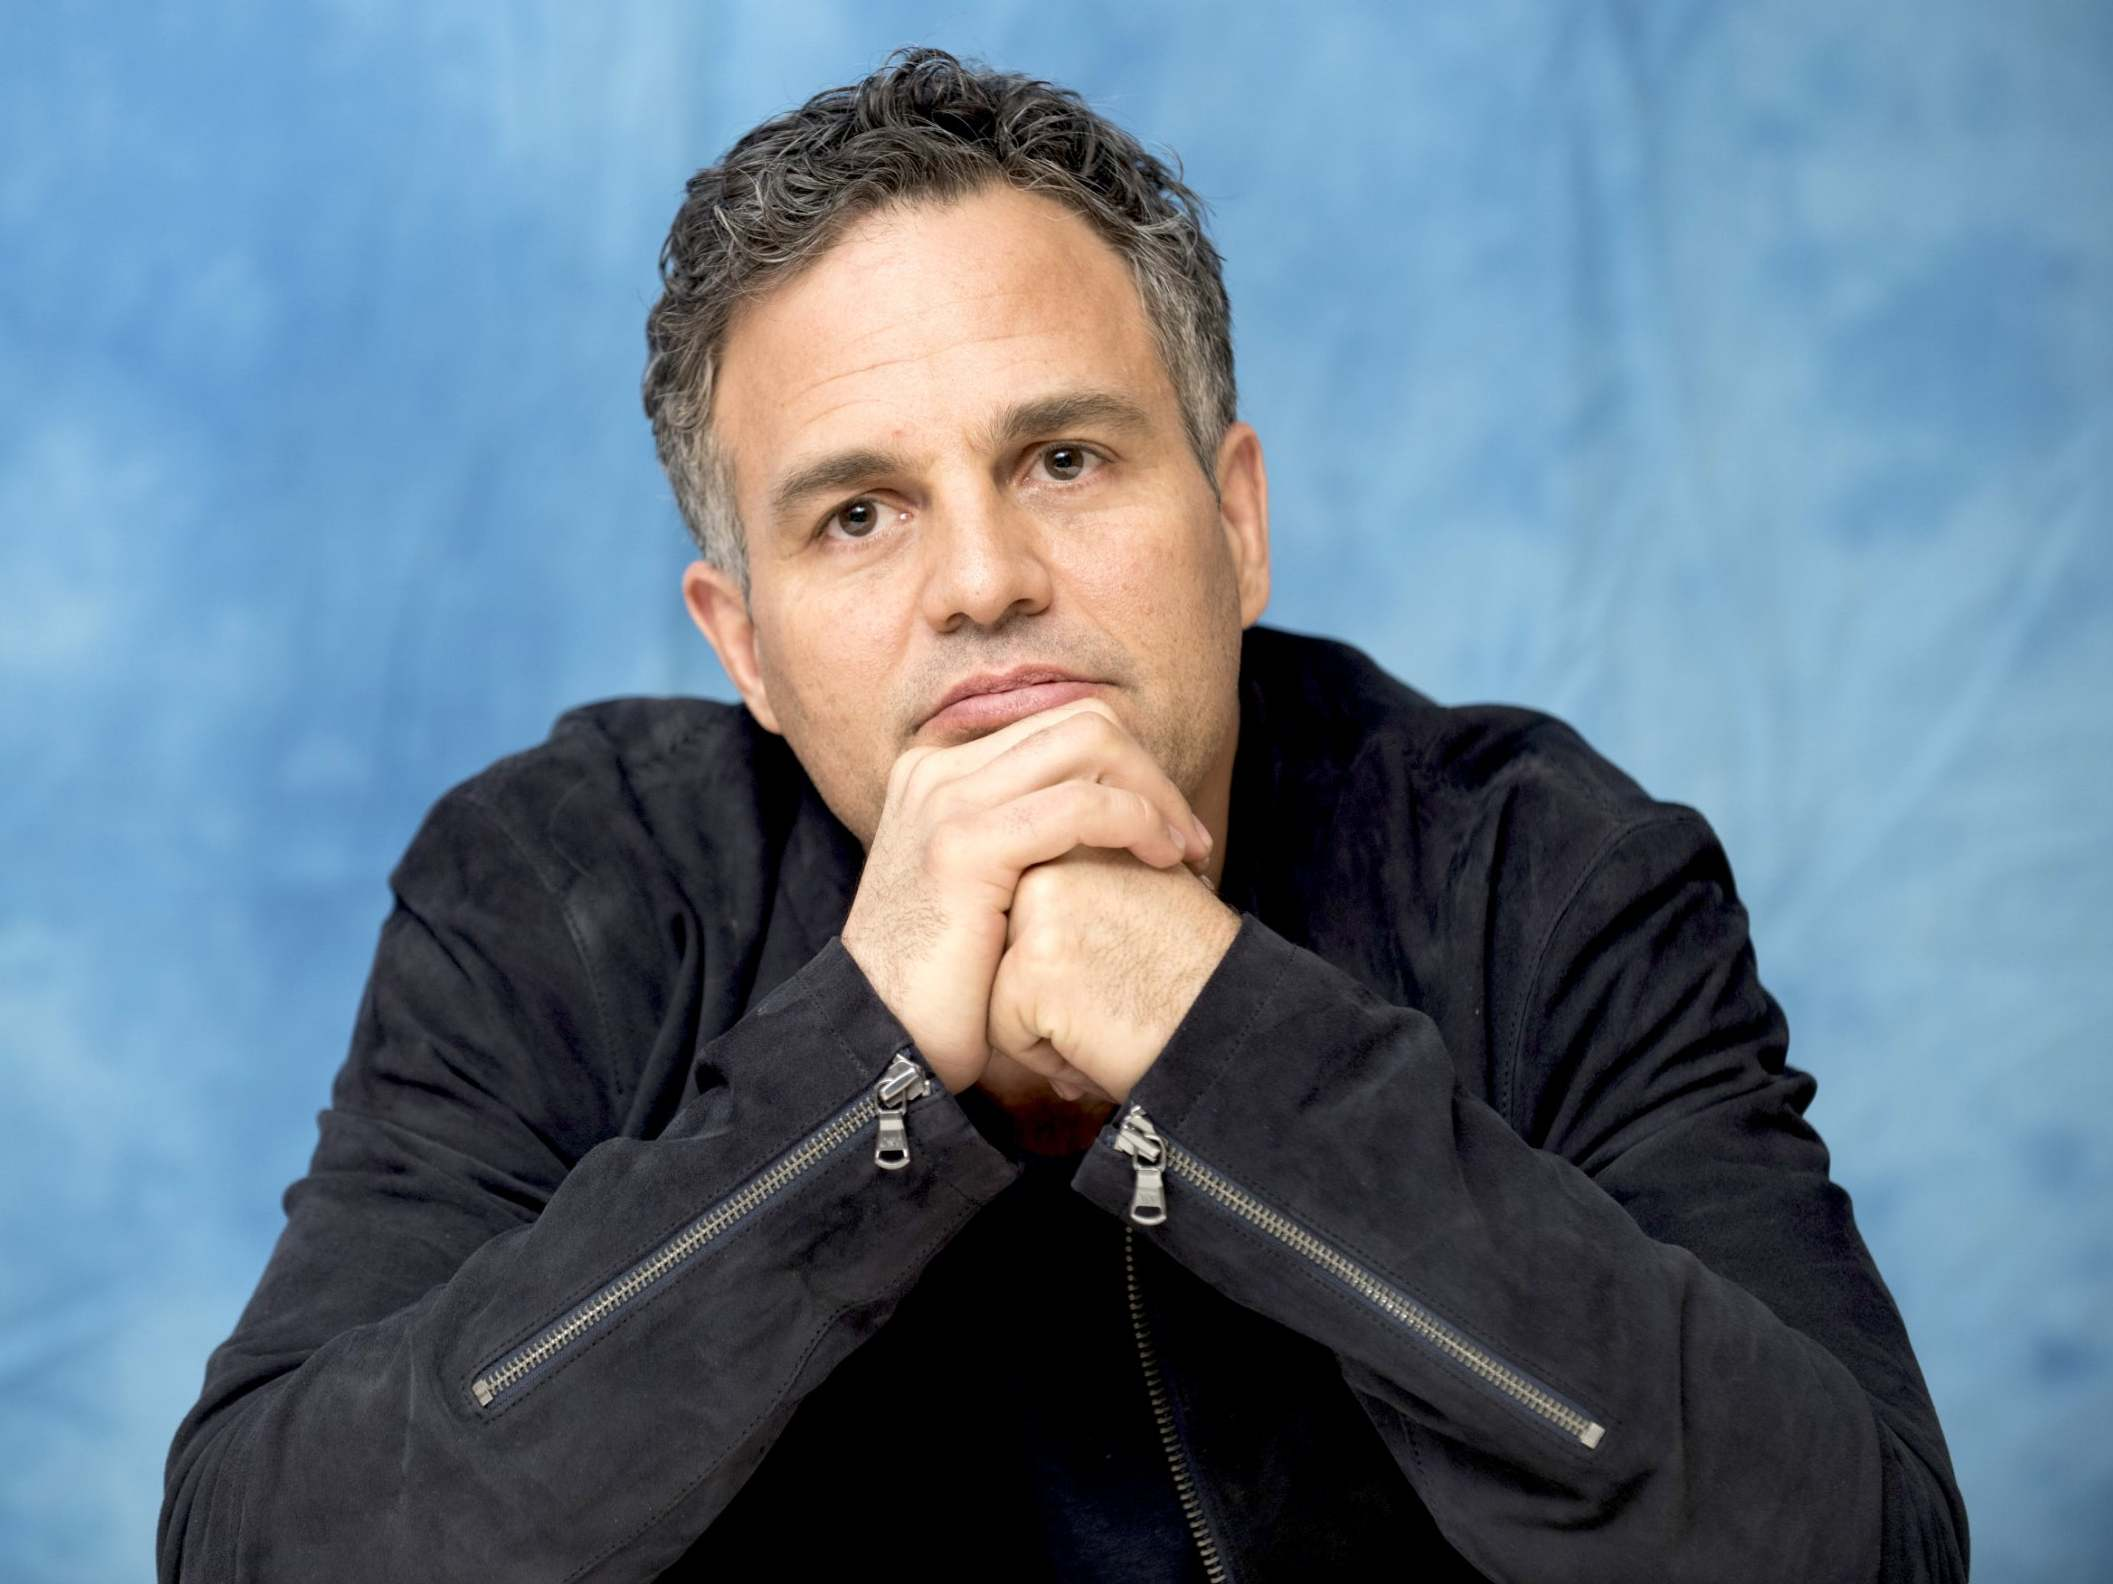 Mark Ruffalo interview: 'Hollywood has been white supremacist for 100 years'